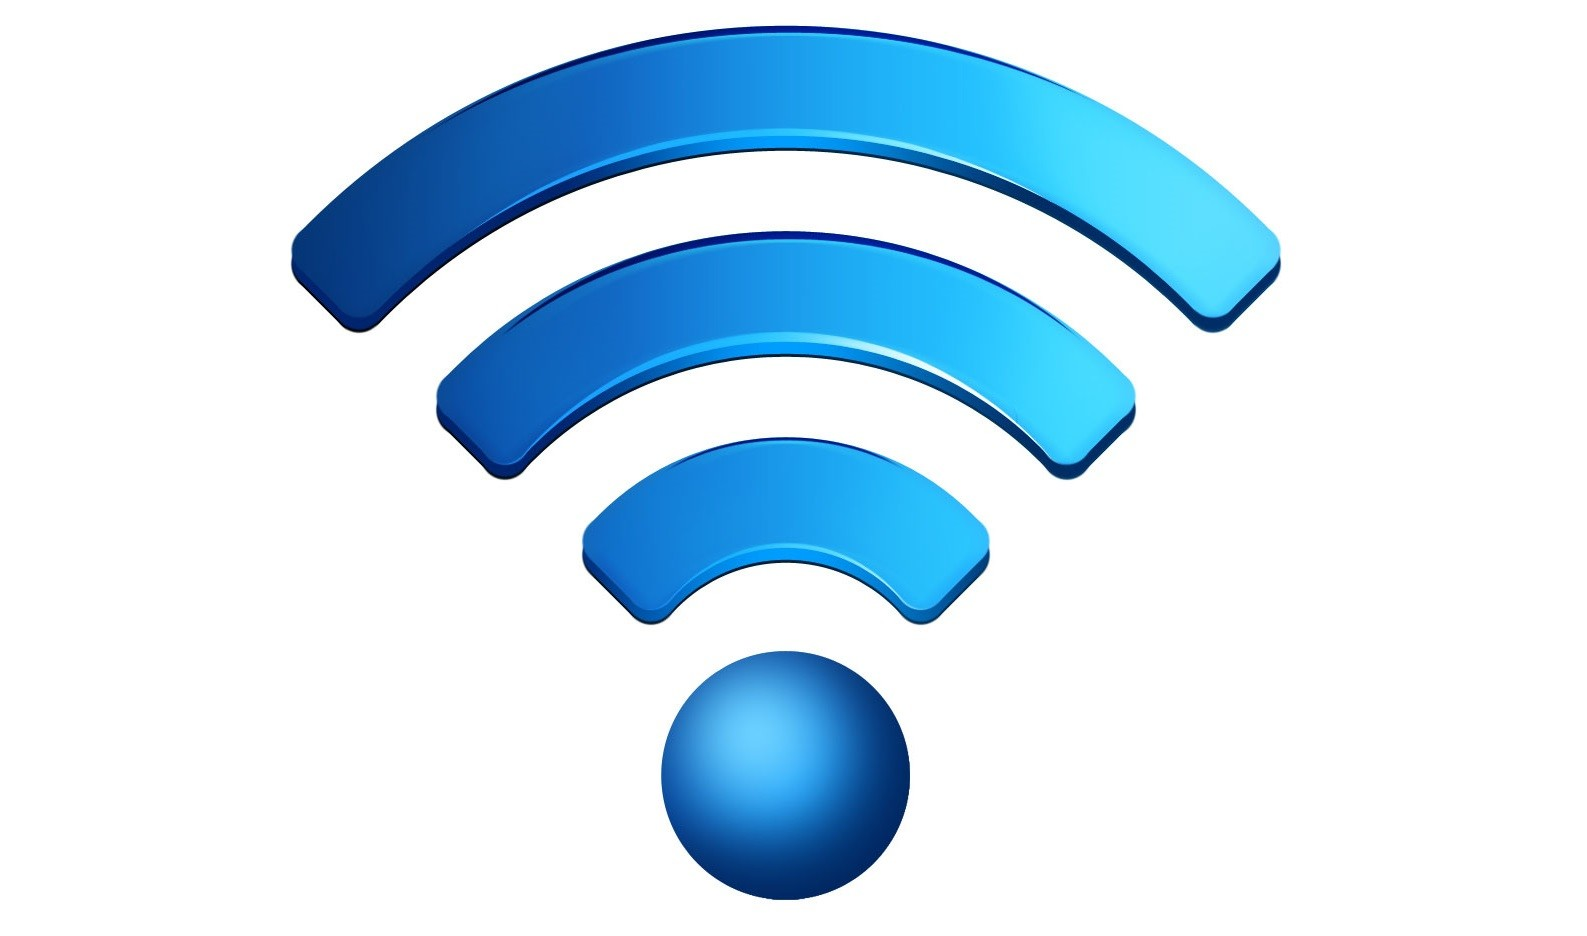 All Wi-Fi devices exposed by